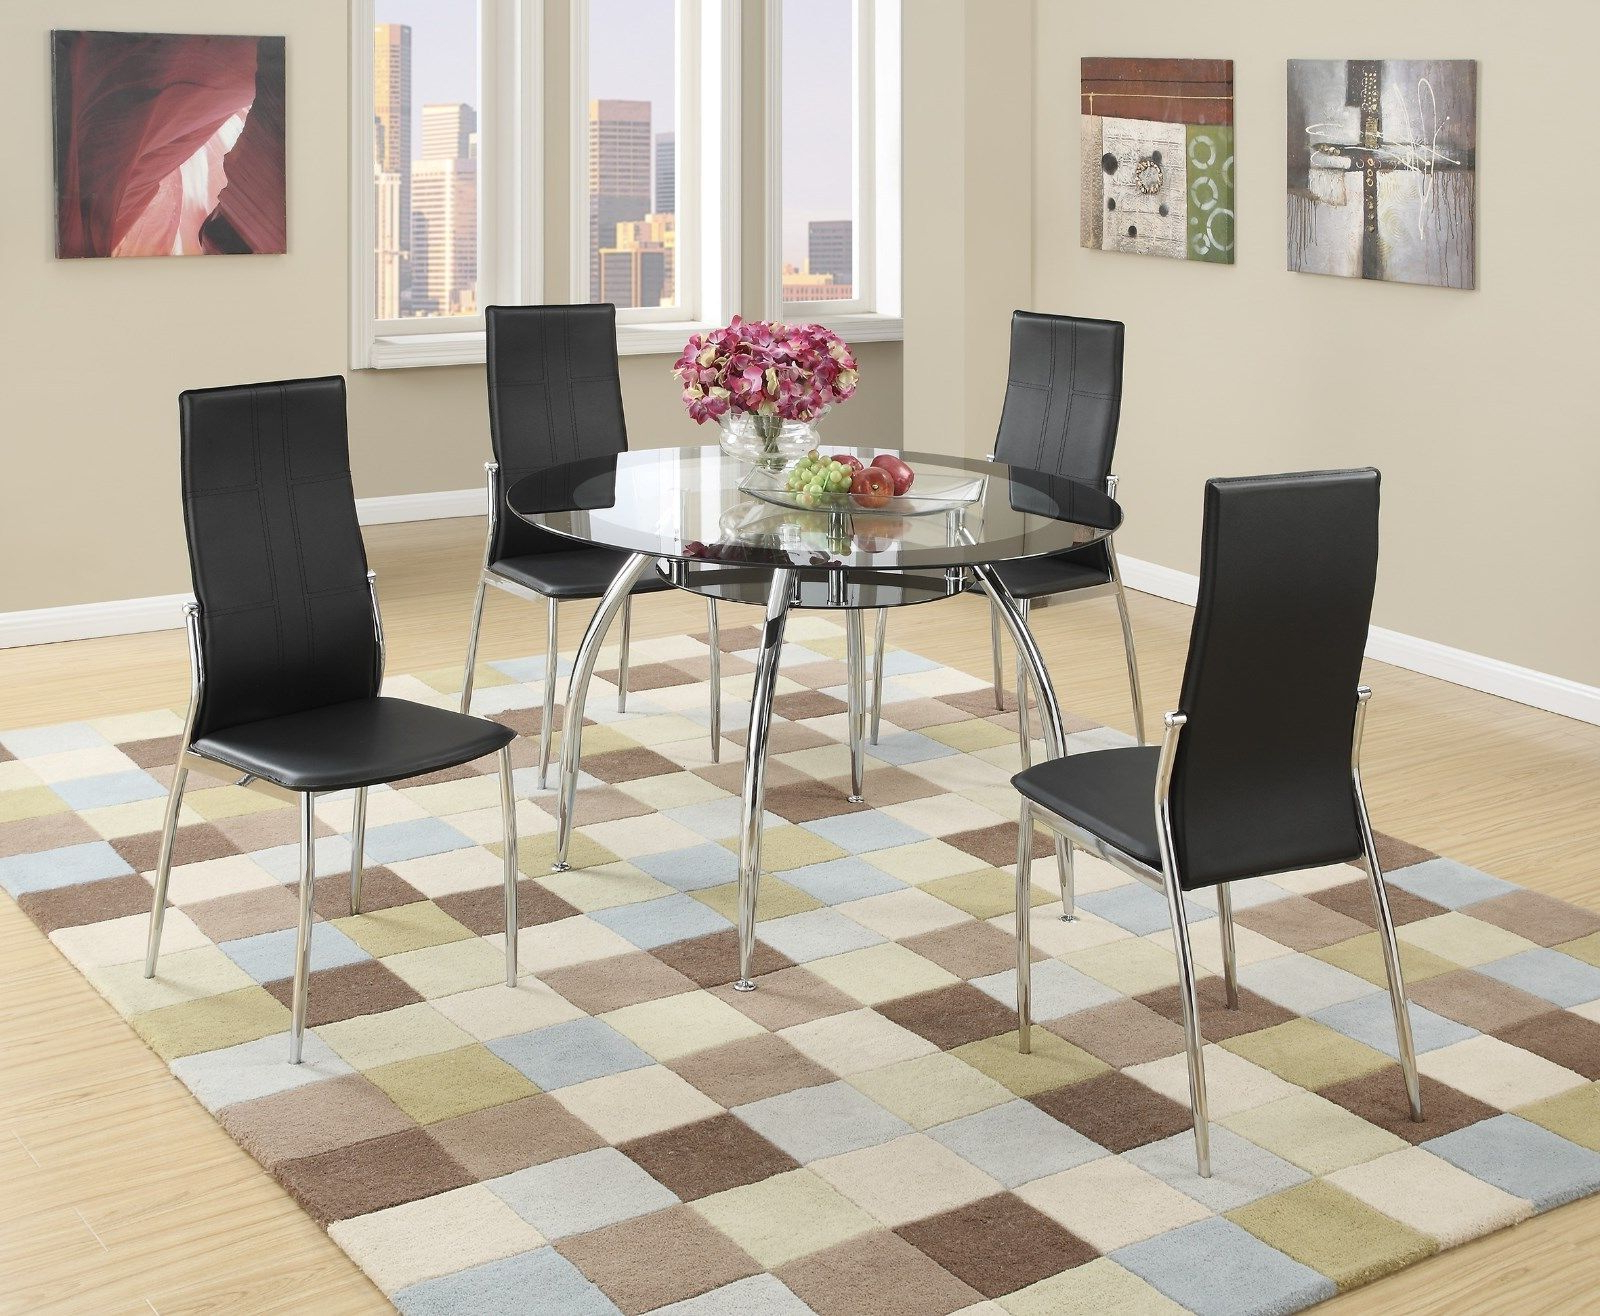 Most Recent Round Dining Tables With Glass Top With Regard To Details About New Tulsa Ii Modern Round Black Chrome Metal Glass Top Dining  Table Kitchen Set (Gallery 17 of 30)